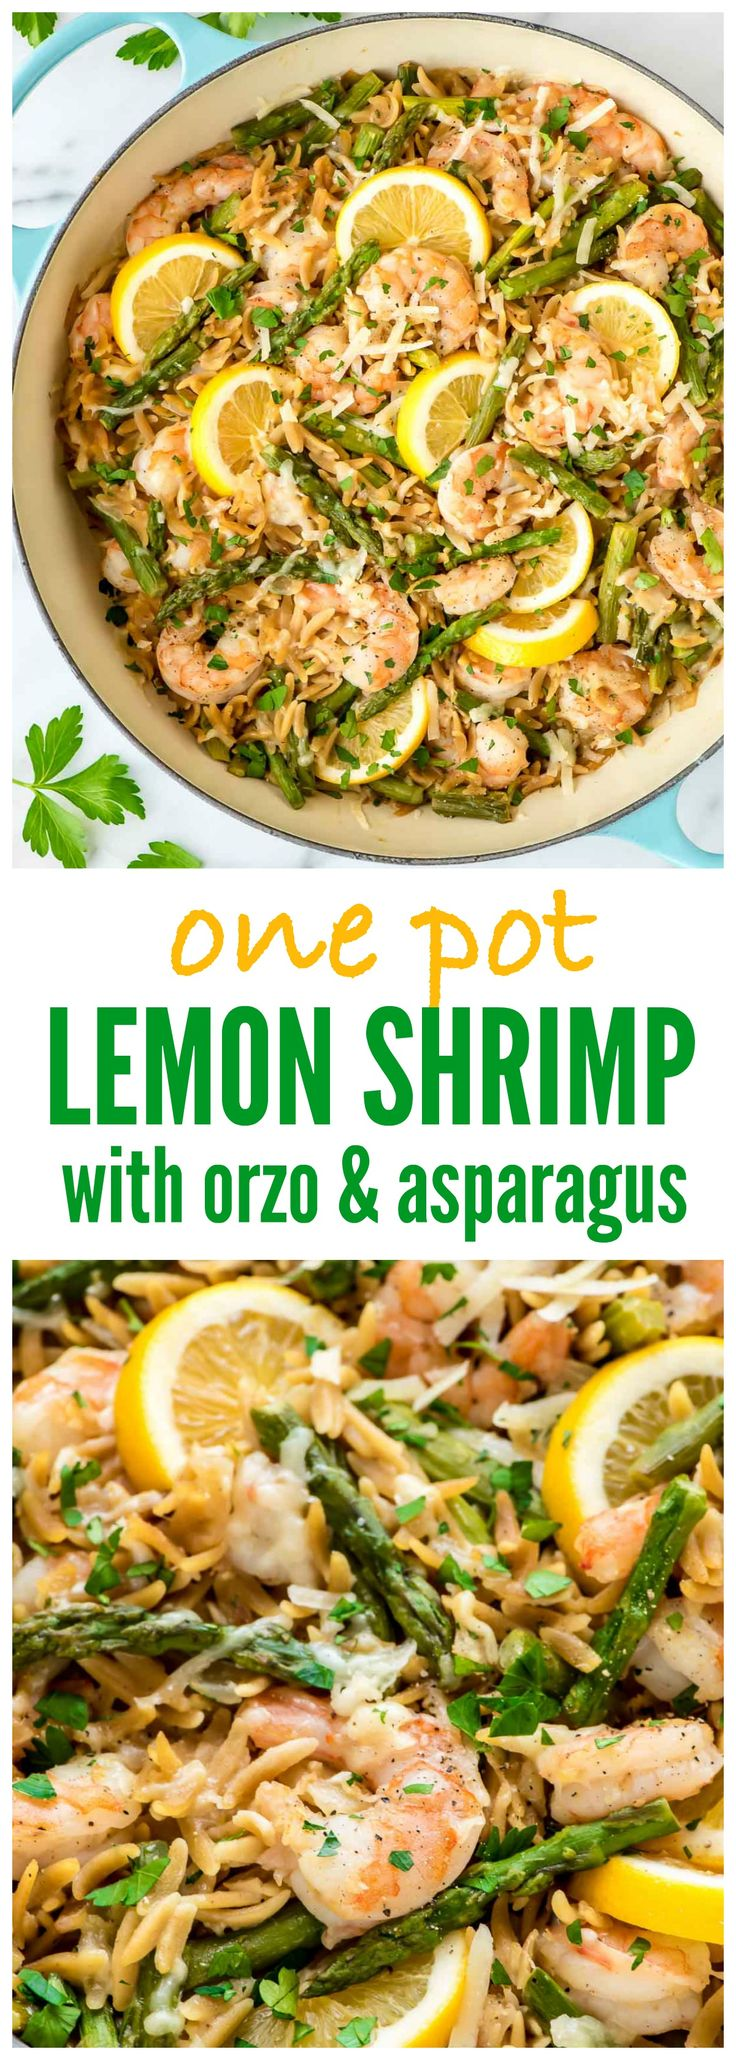 Lemon Shrimp Pasta with Orzo and Asparagus – a simple, delicious one-pot meal! So easy and perfect for busy weeknights. Even the orzo gets cooked right in the pot! @wellplated